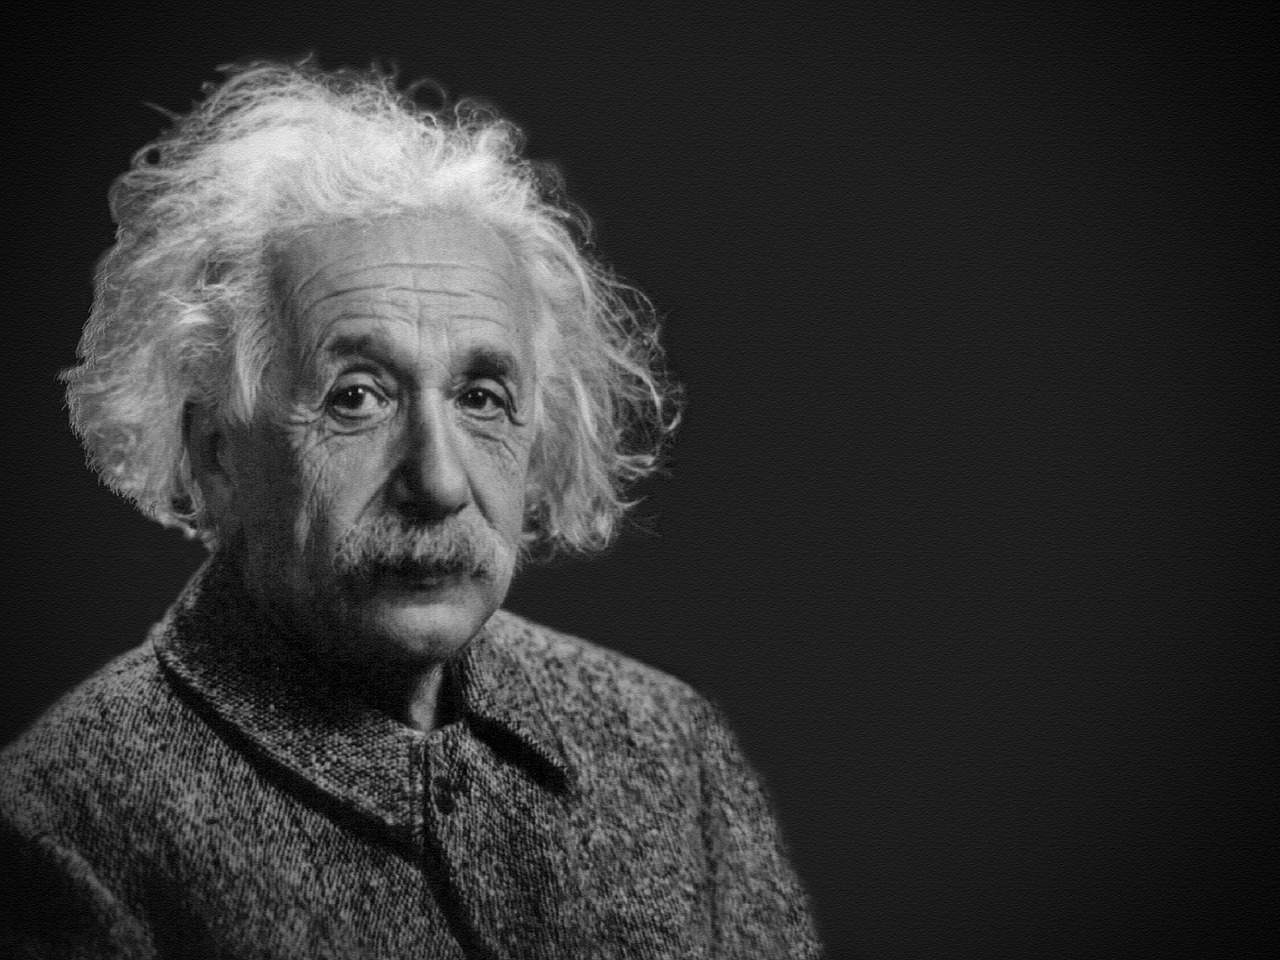 albert einstein facts, people facts